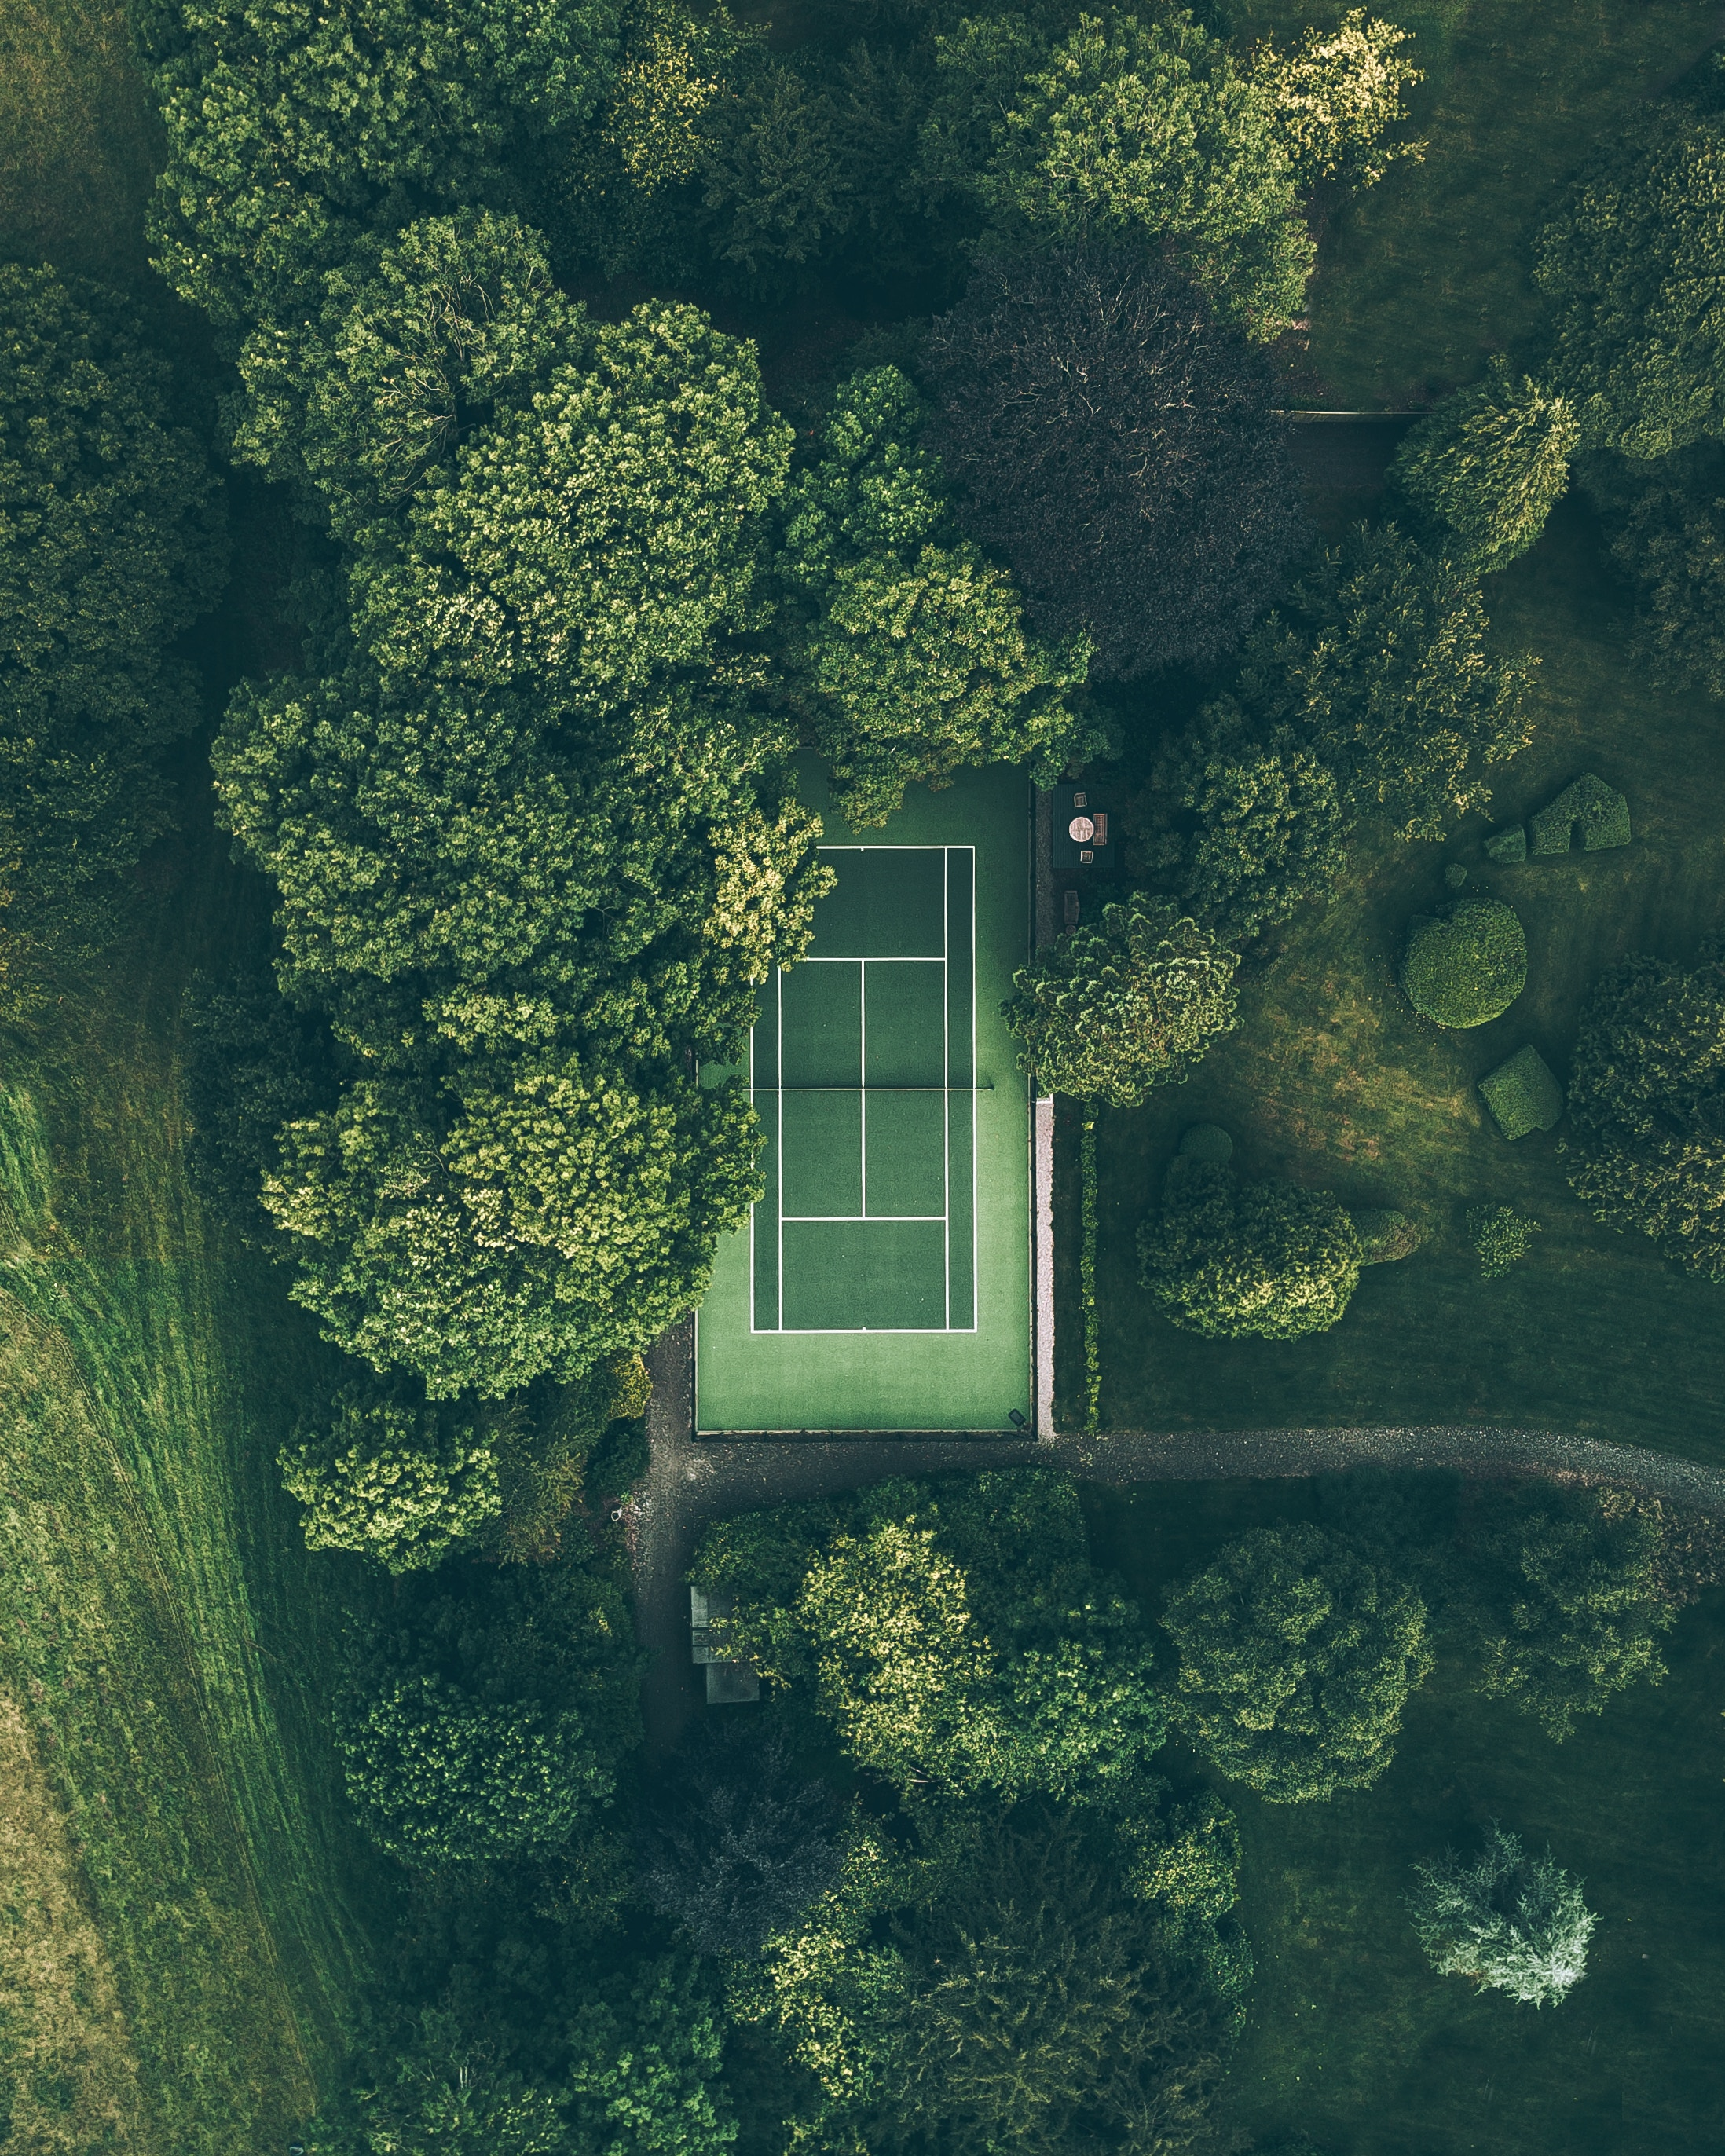 127921 download wallpaper Trees, View From Above, Minimalism, Court screensavers and pictures for free